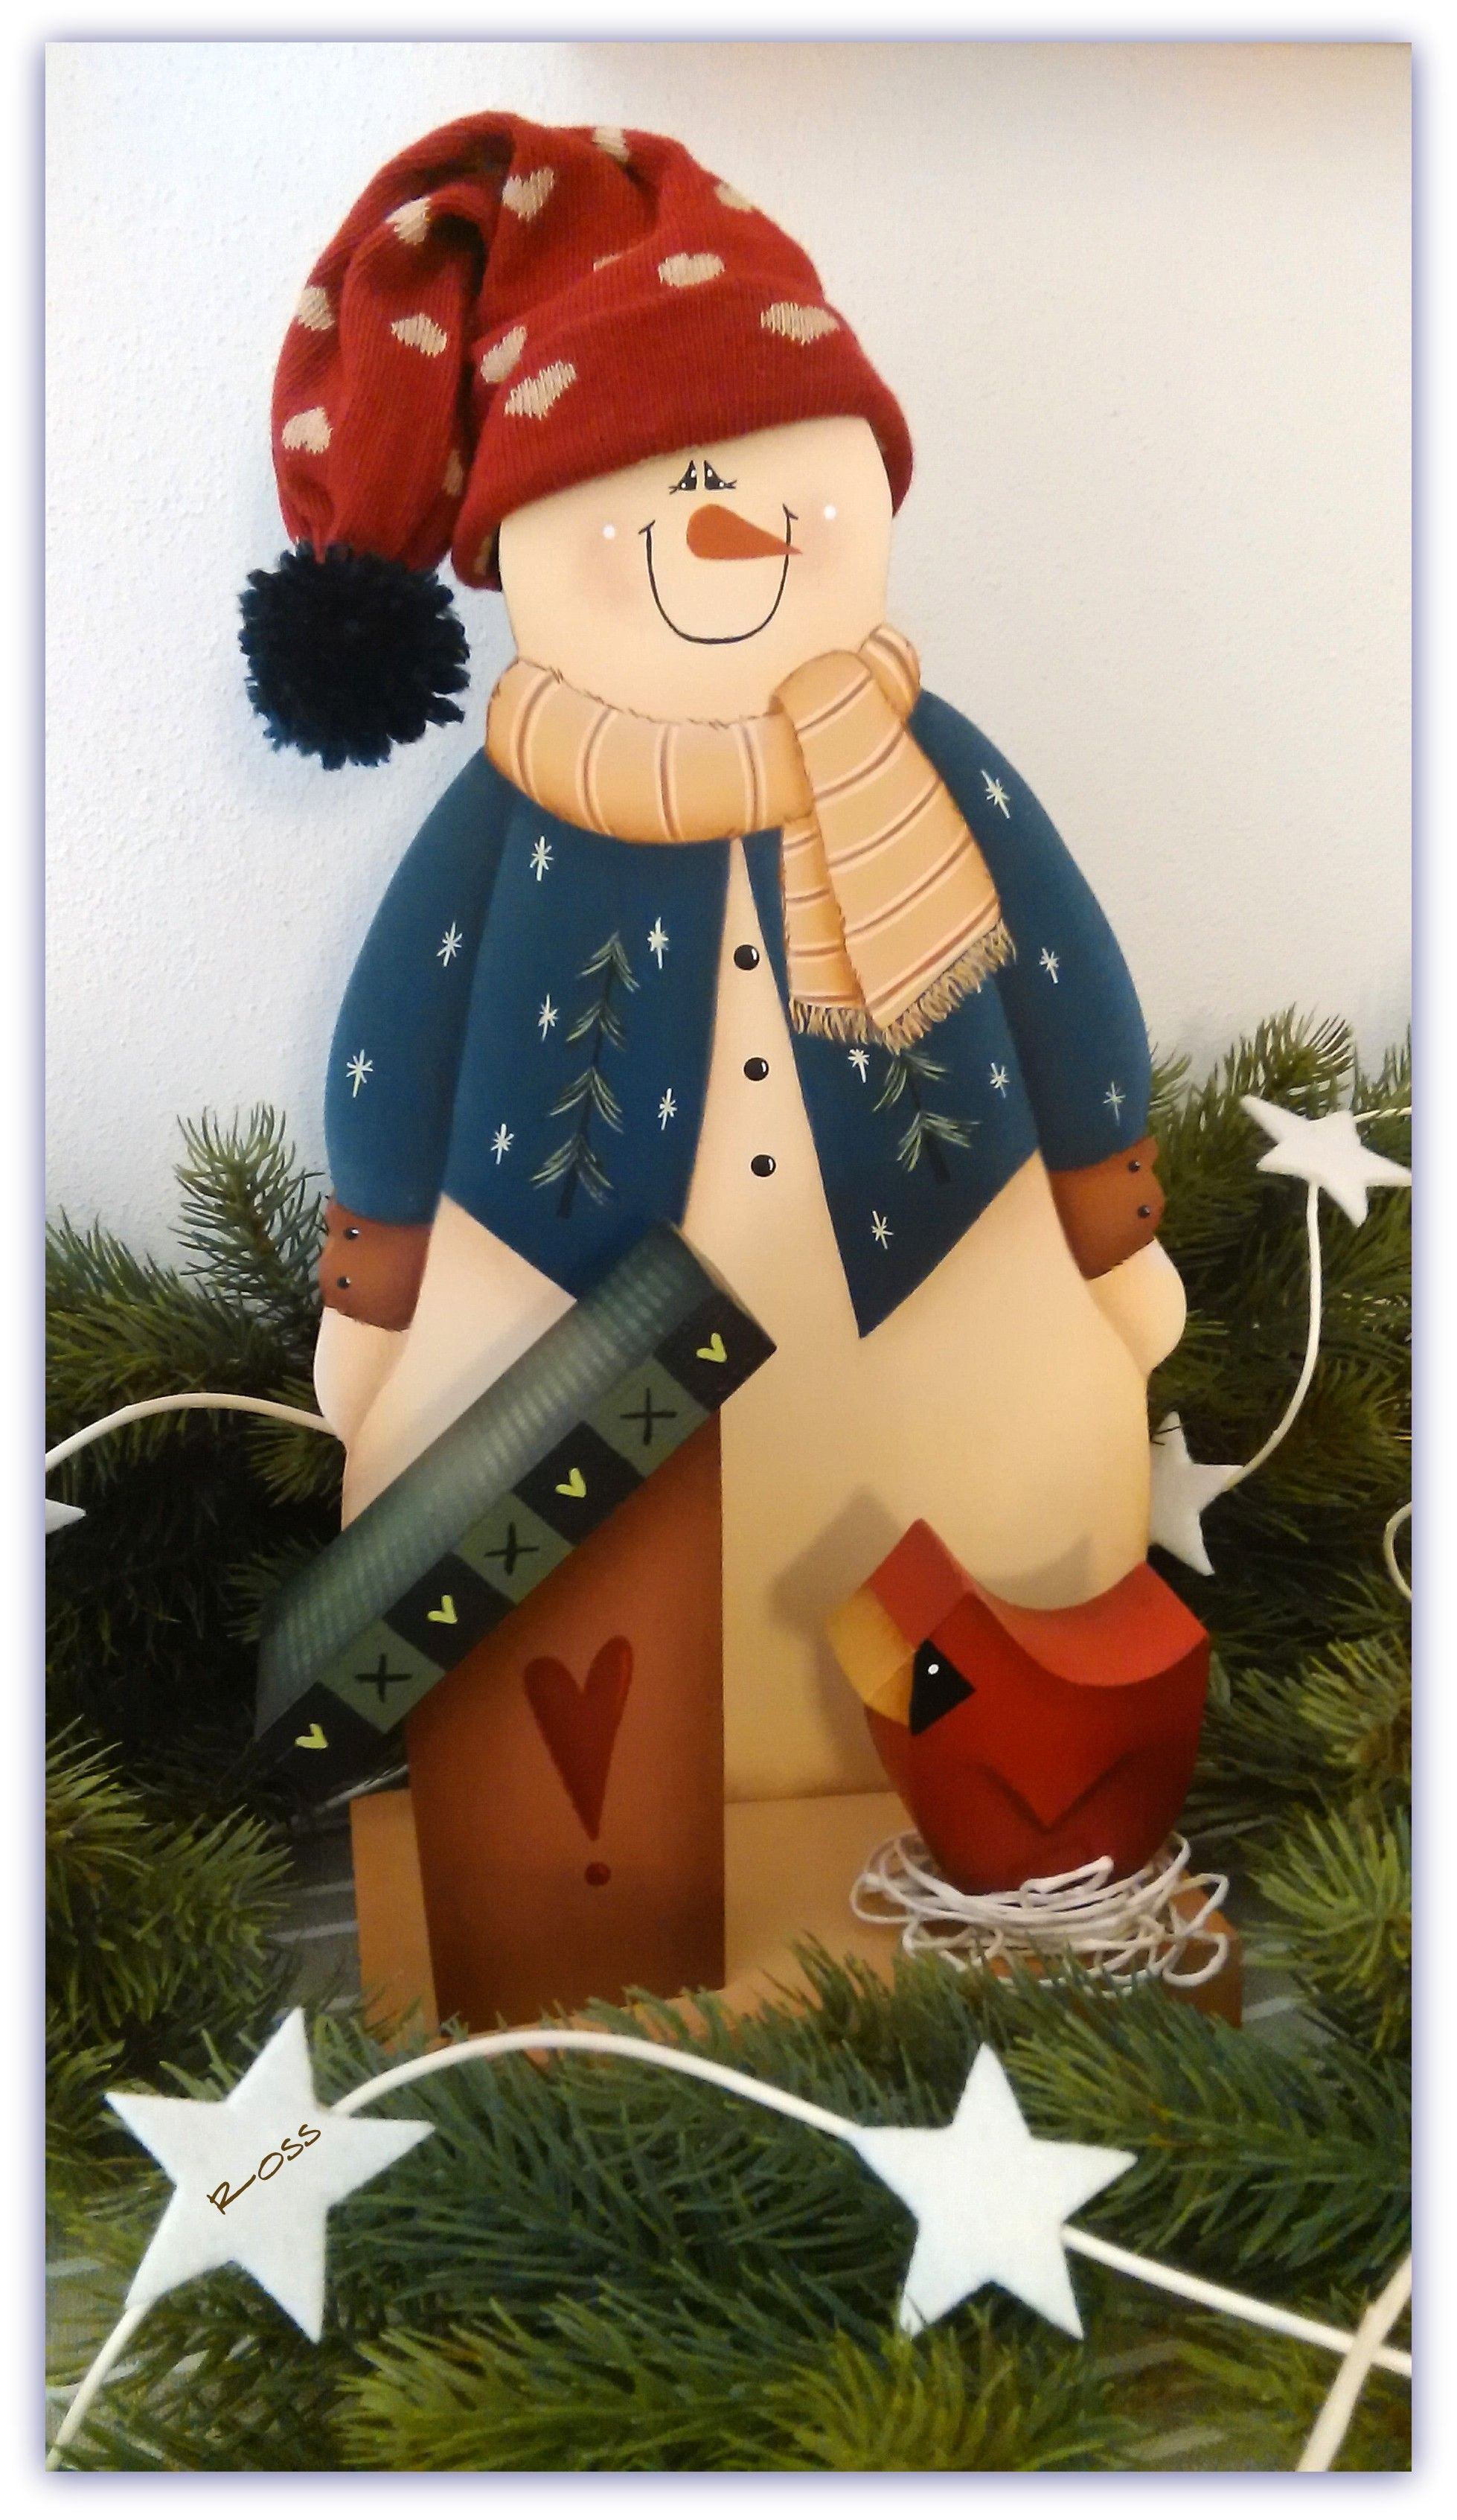 snowman design rene mullins painted by ross - Ross Christmas Decorations